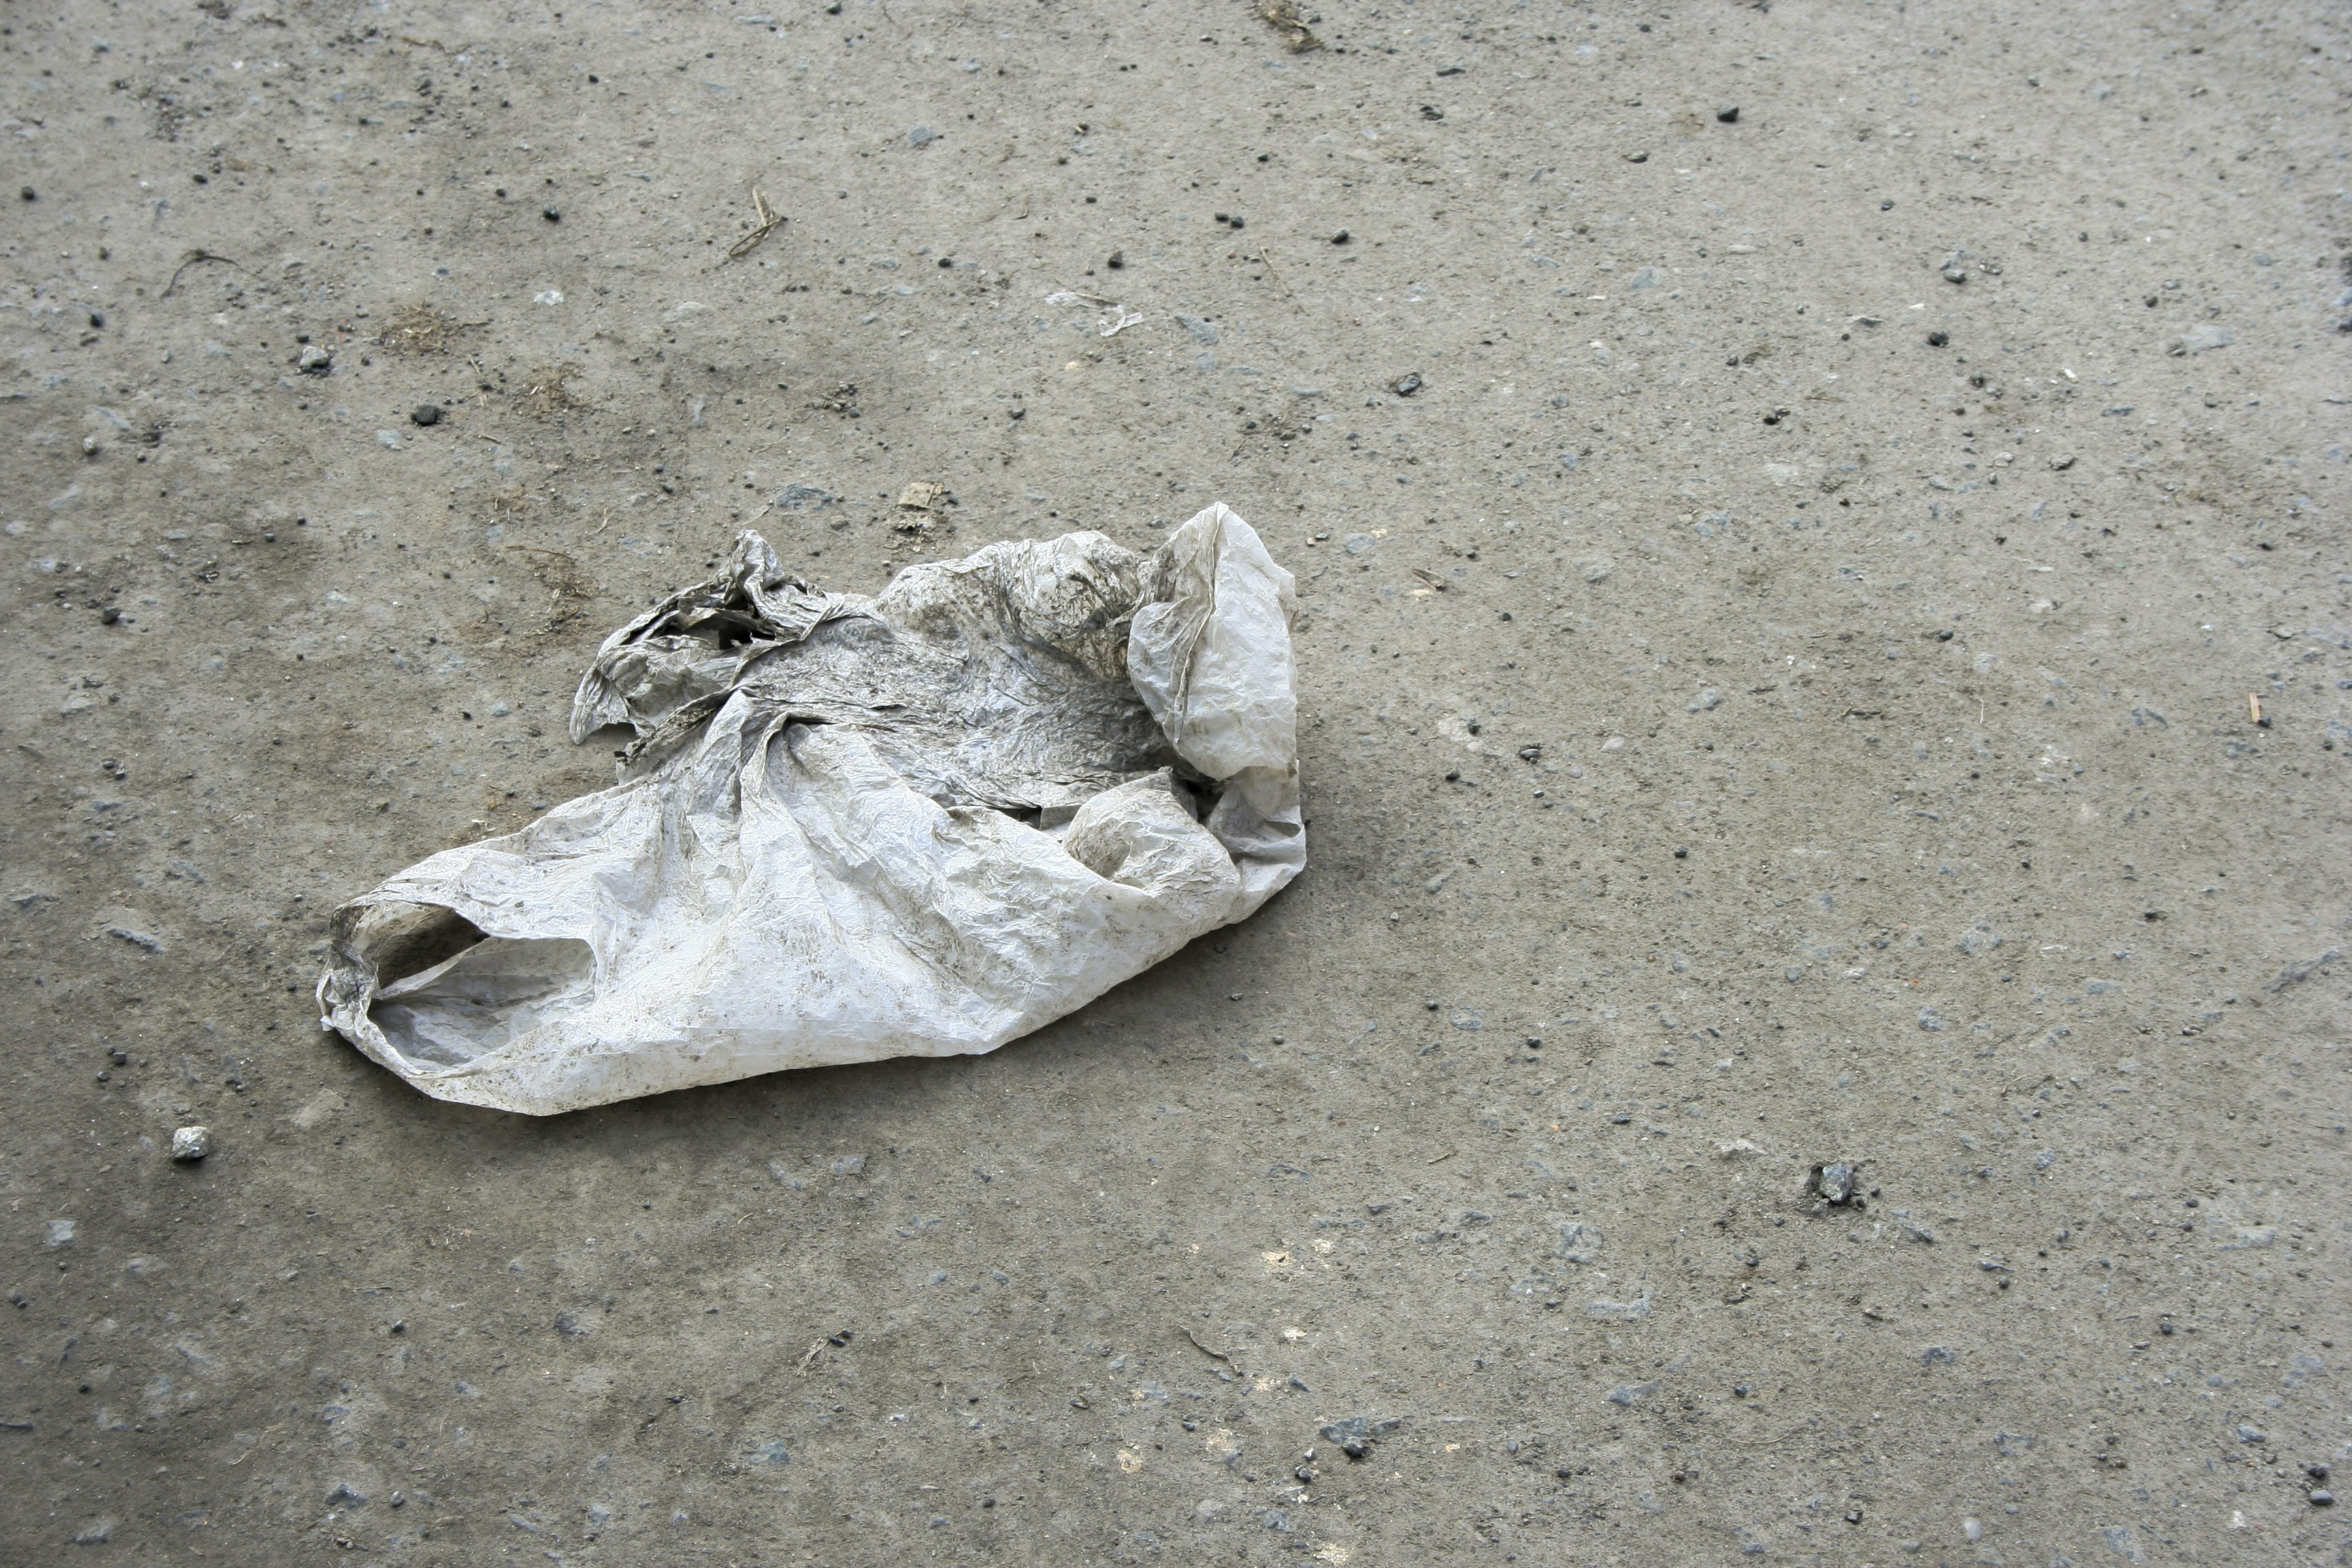 white plastic bag on gray surface